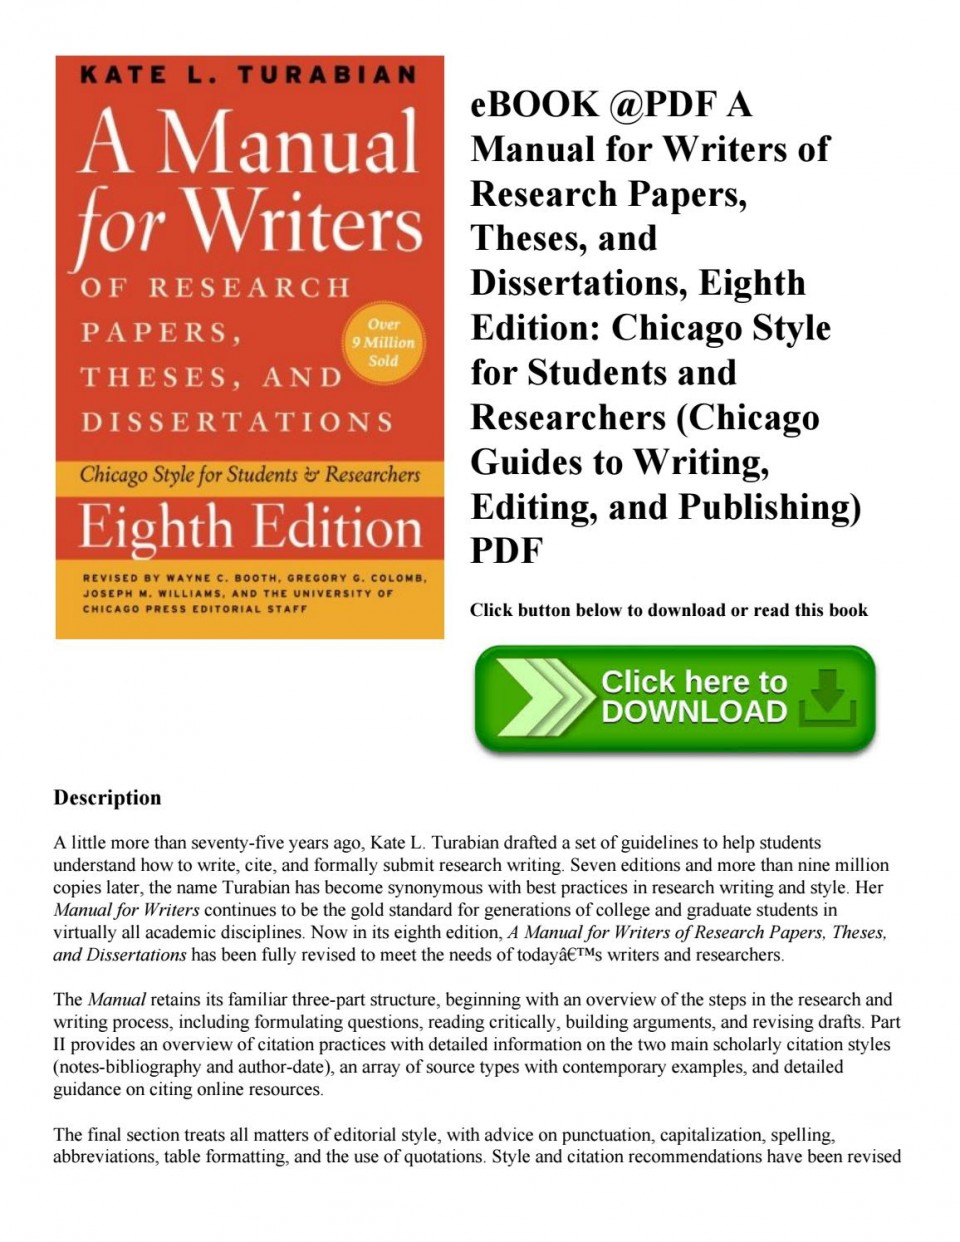 007 Manual For Writers Of Research Papers Theses And Dissertations Ebook Paper Page 1 Unbelievable A 960